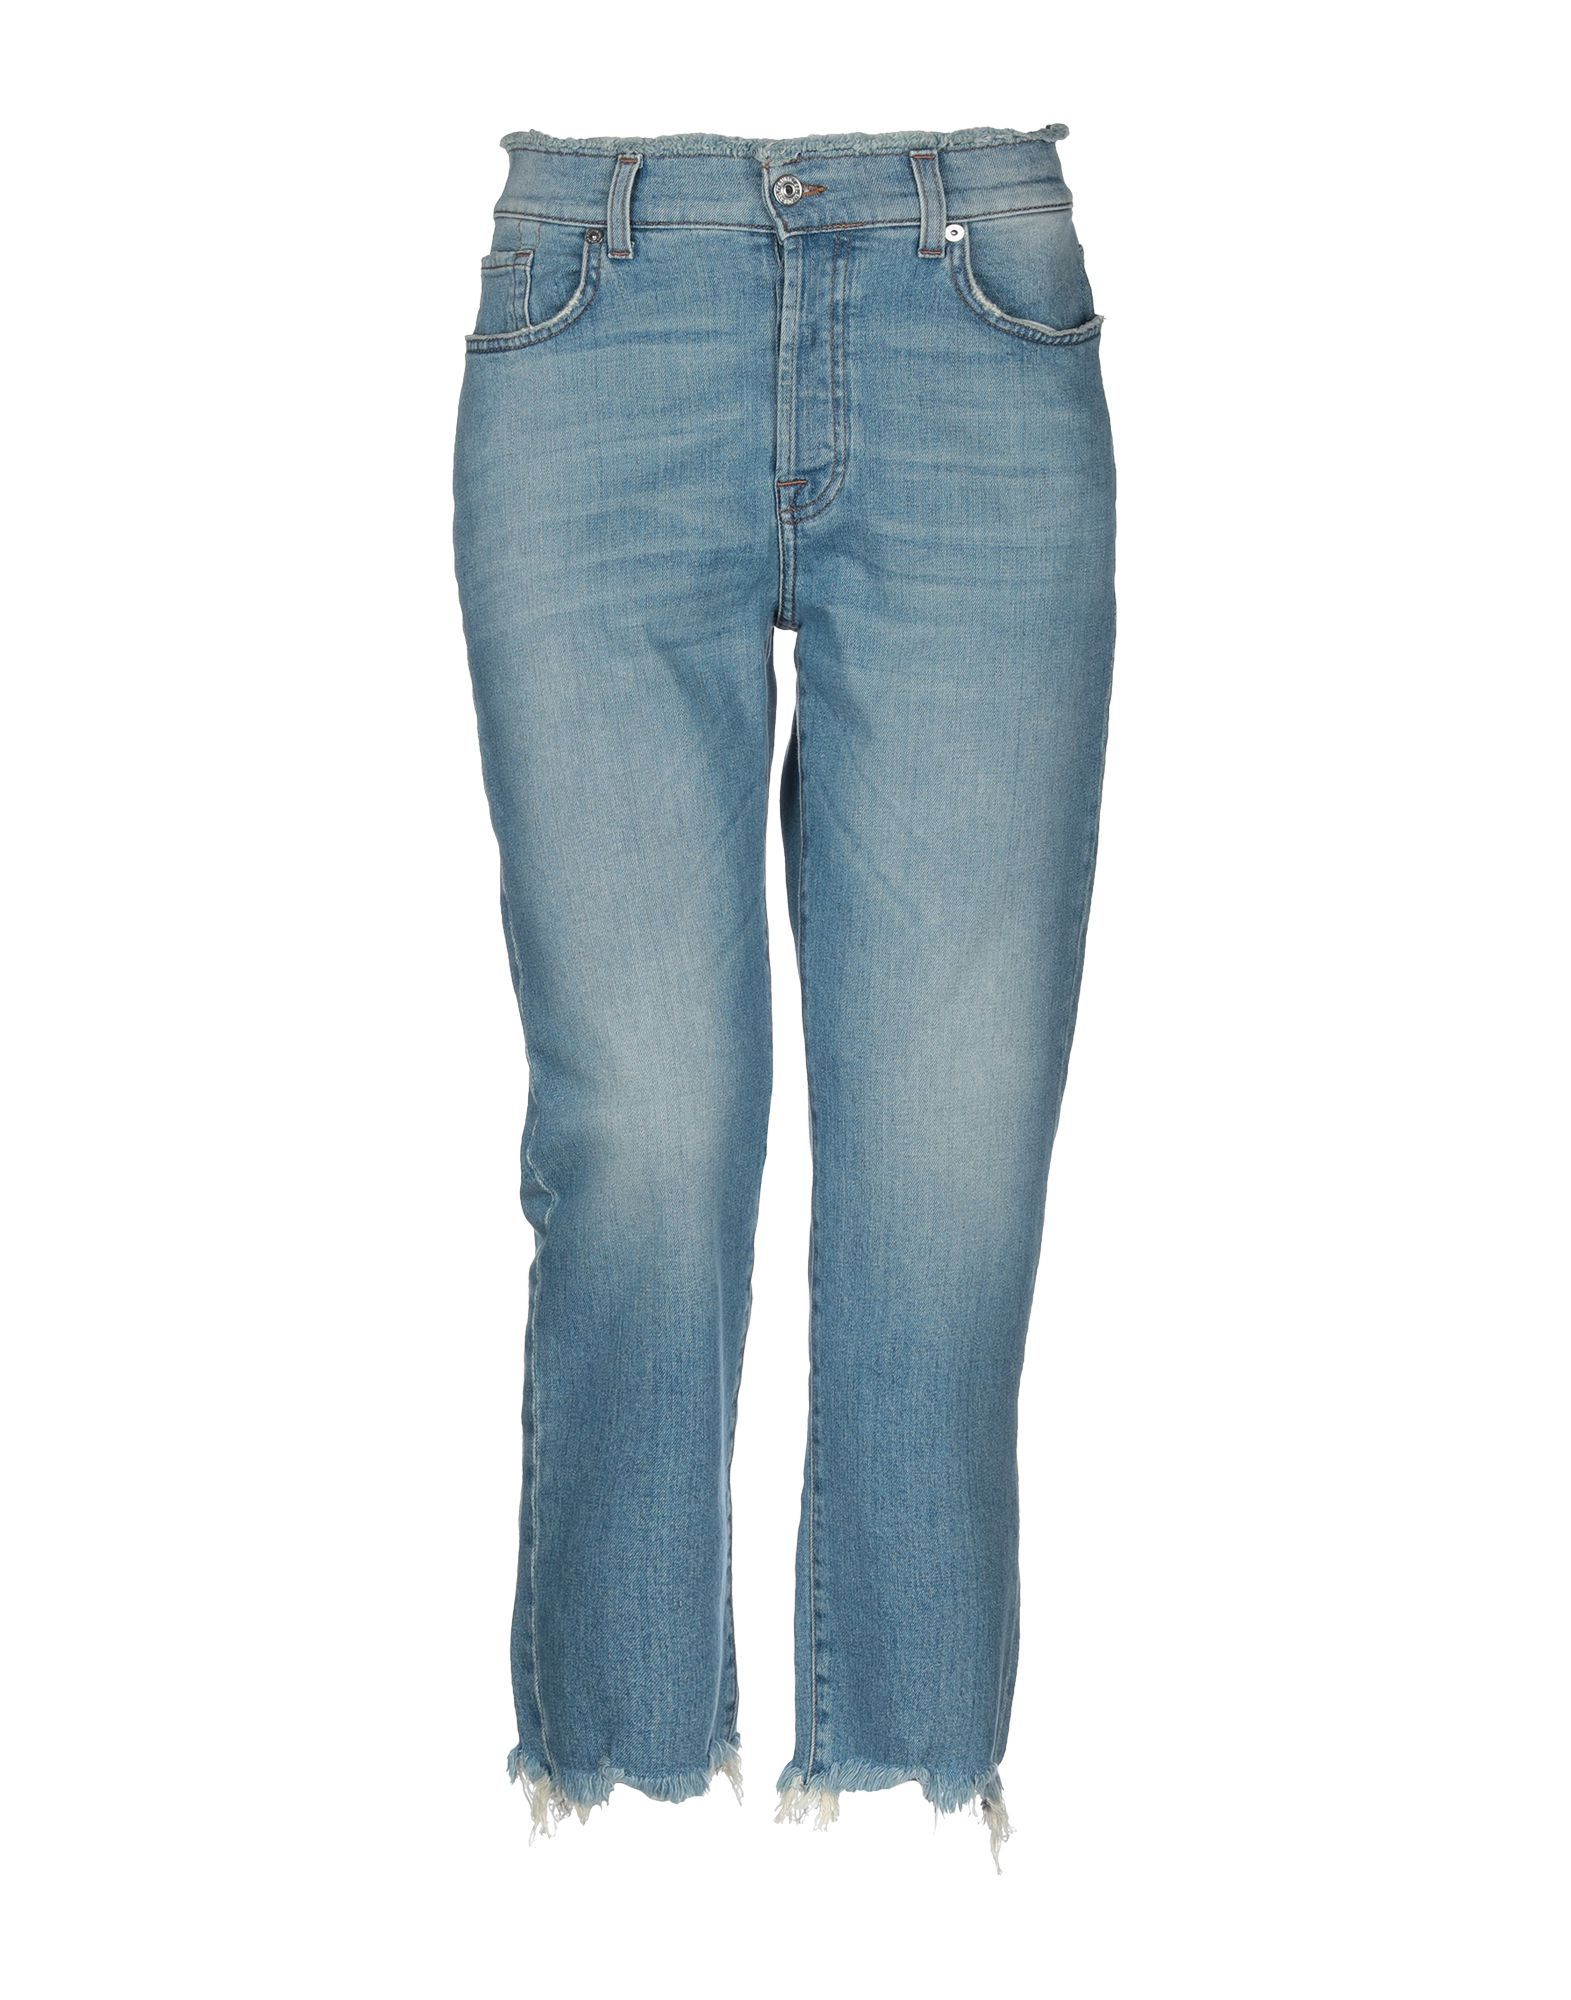 7 For All Mankind Blue Cotton High Waisted Jeans